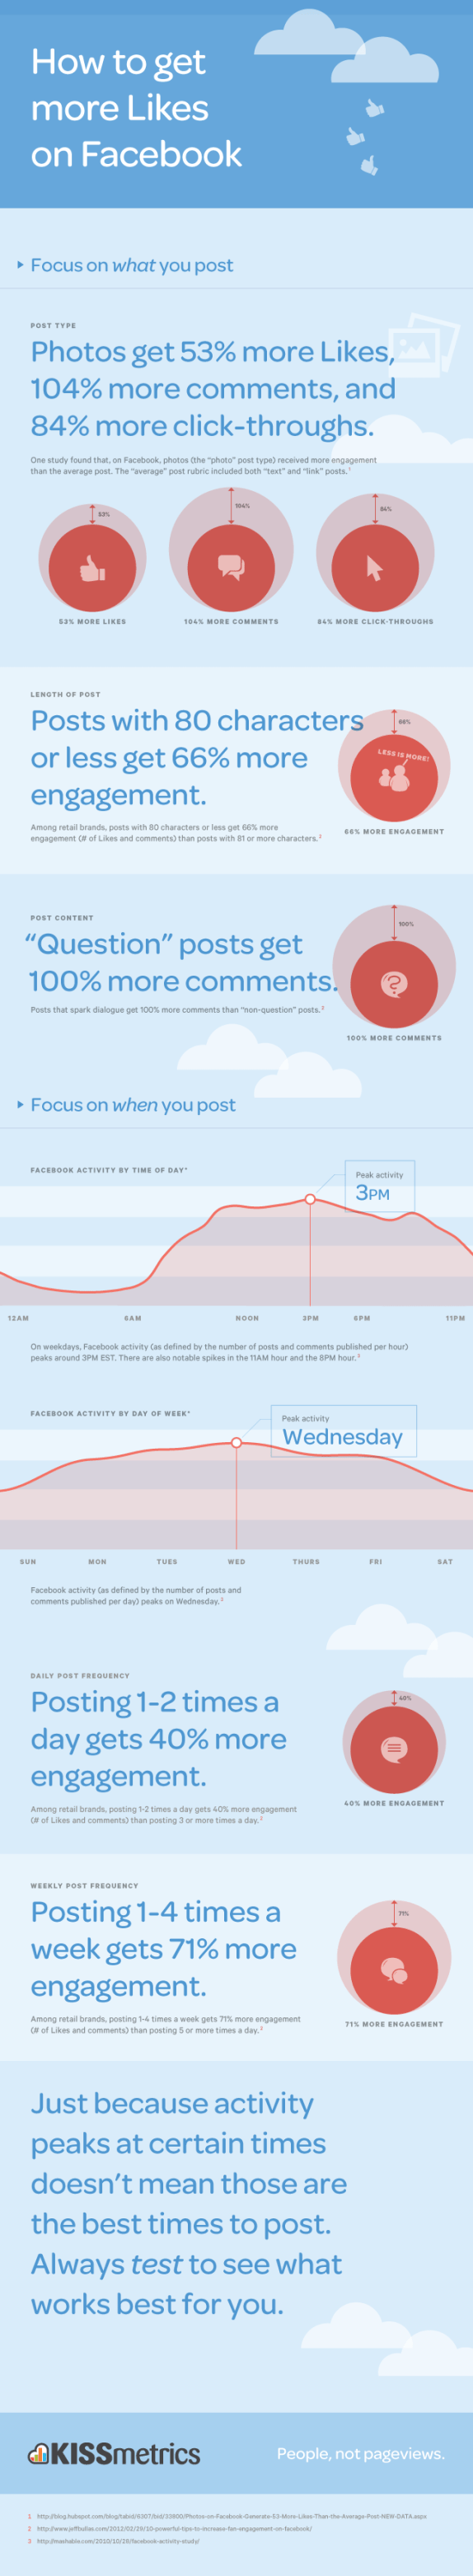 How to Get More Likes on Facebook - Infographic